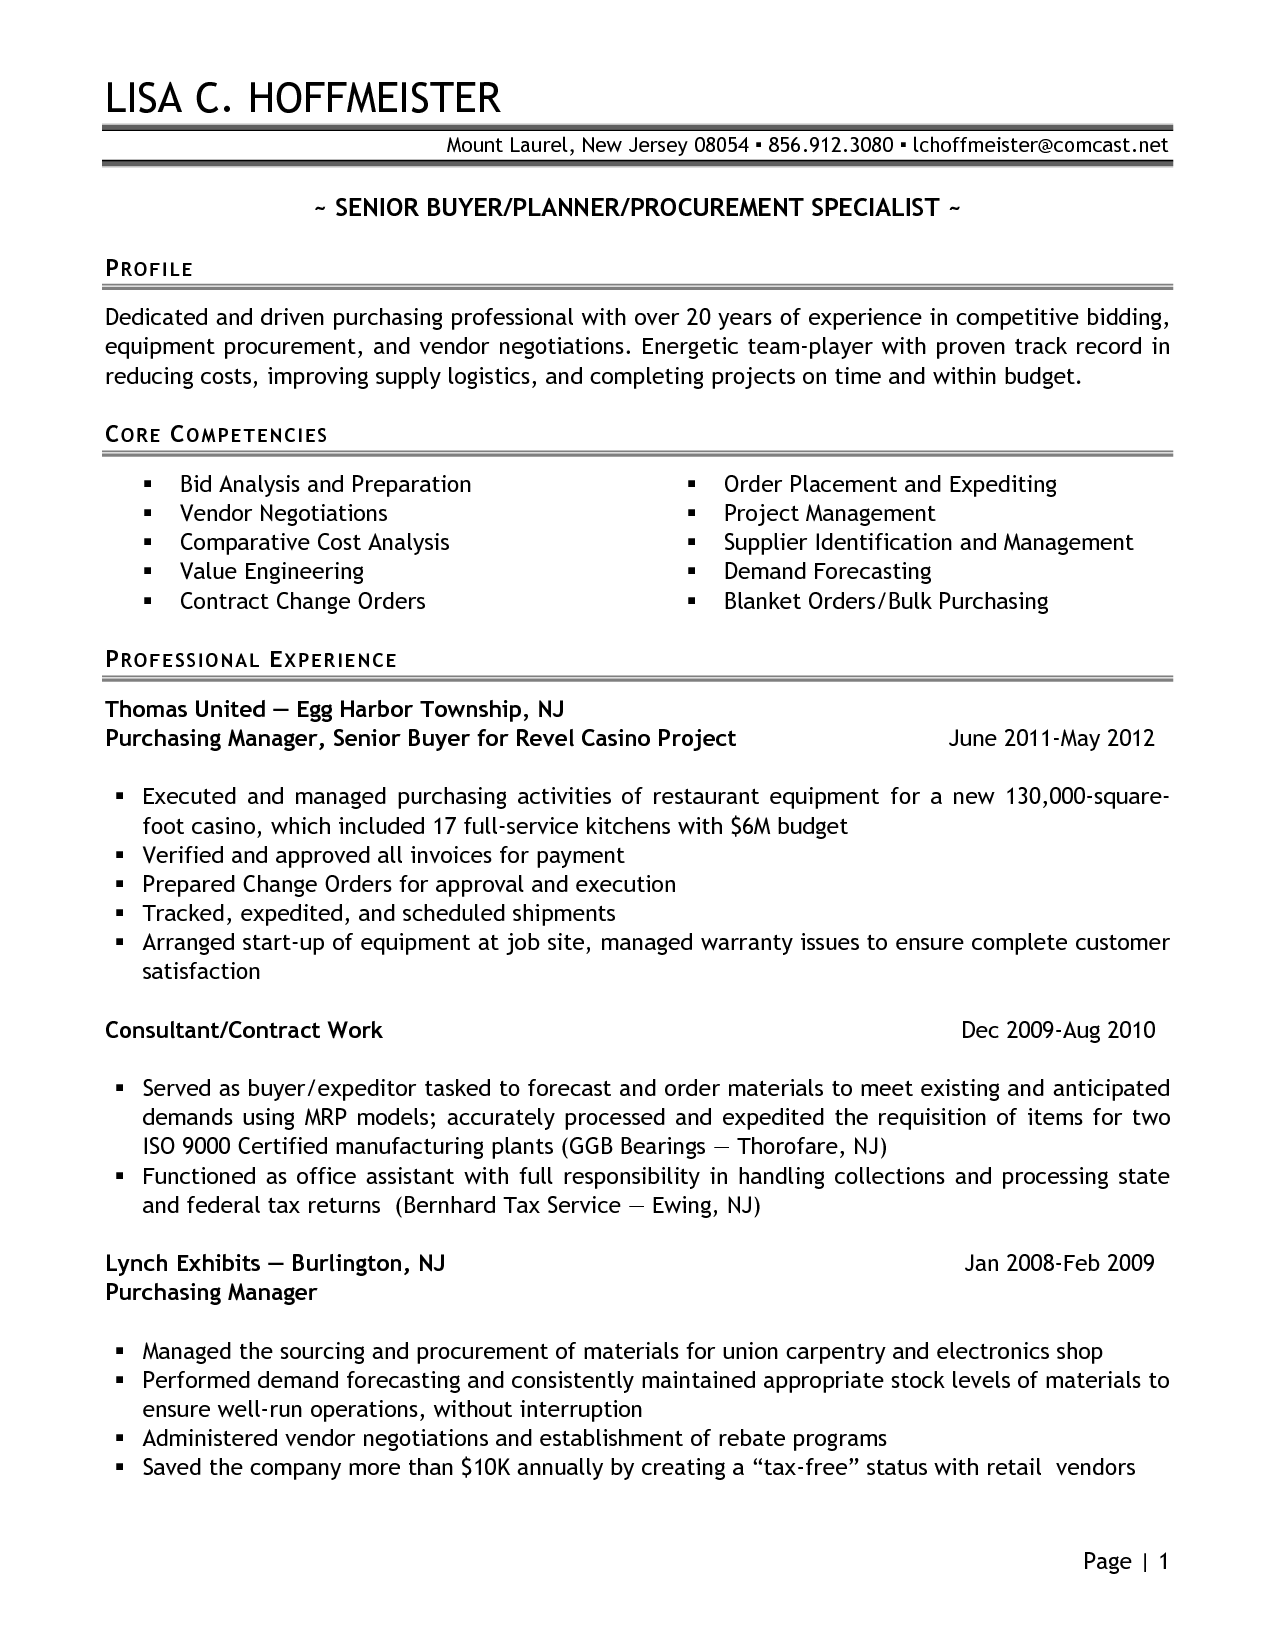 procurement manager resume top8procurementmanagerresumesamples 13e731d97065aaabbf6a5505ee3cd196 procurement manager resumehtml - Procurement Resume